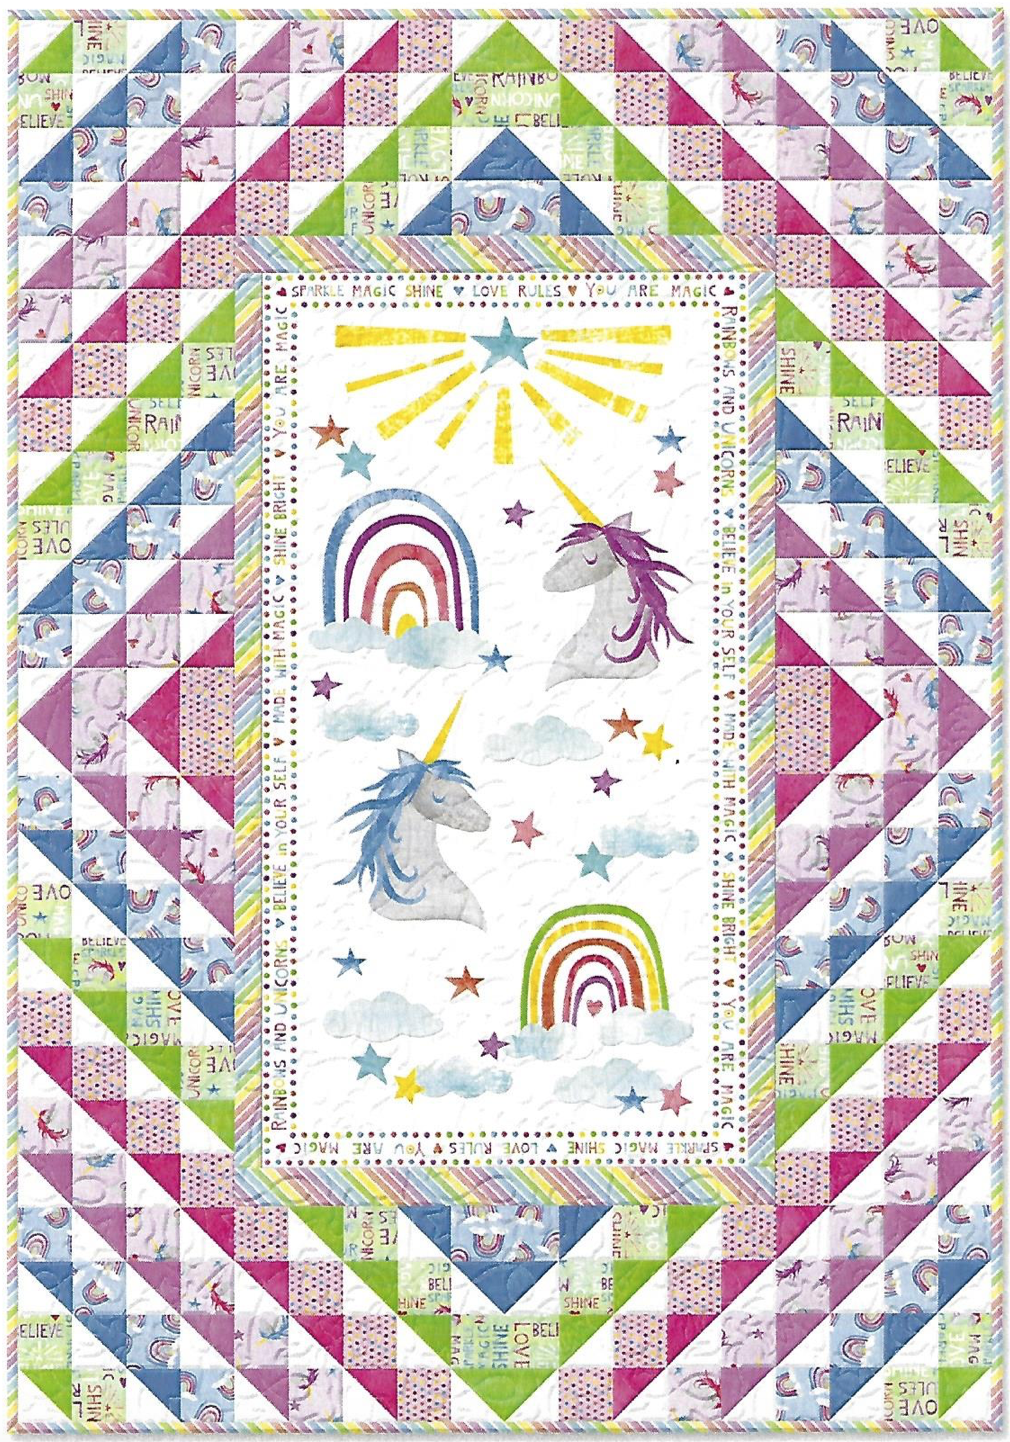 Sparkle Magic Shine Quilt Kit